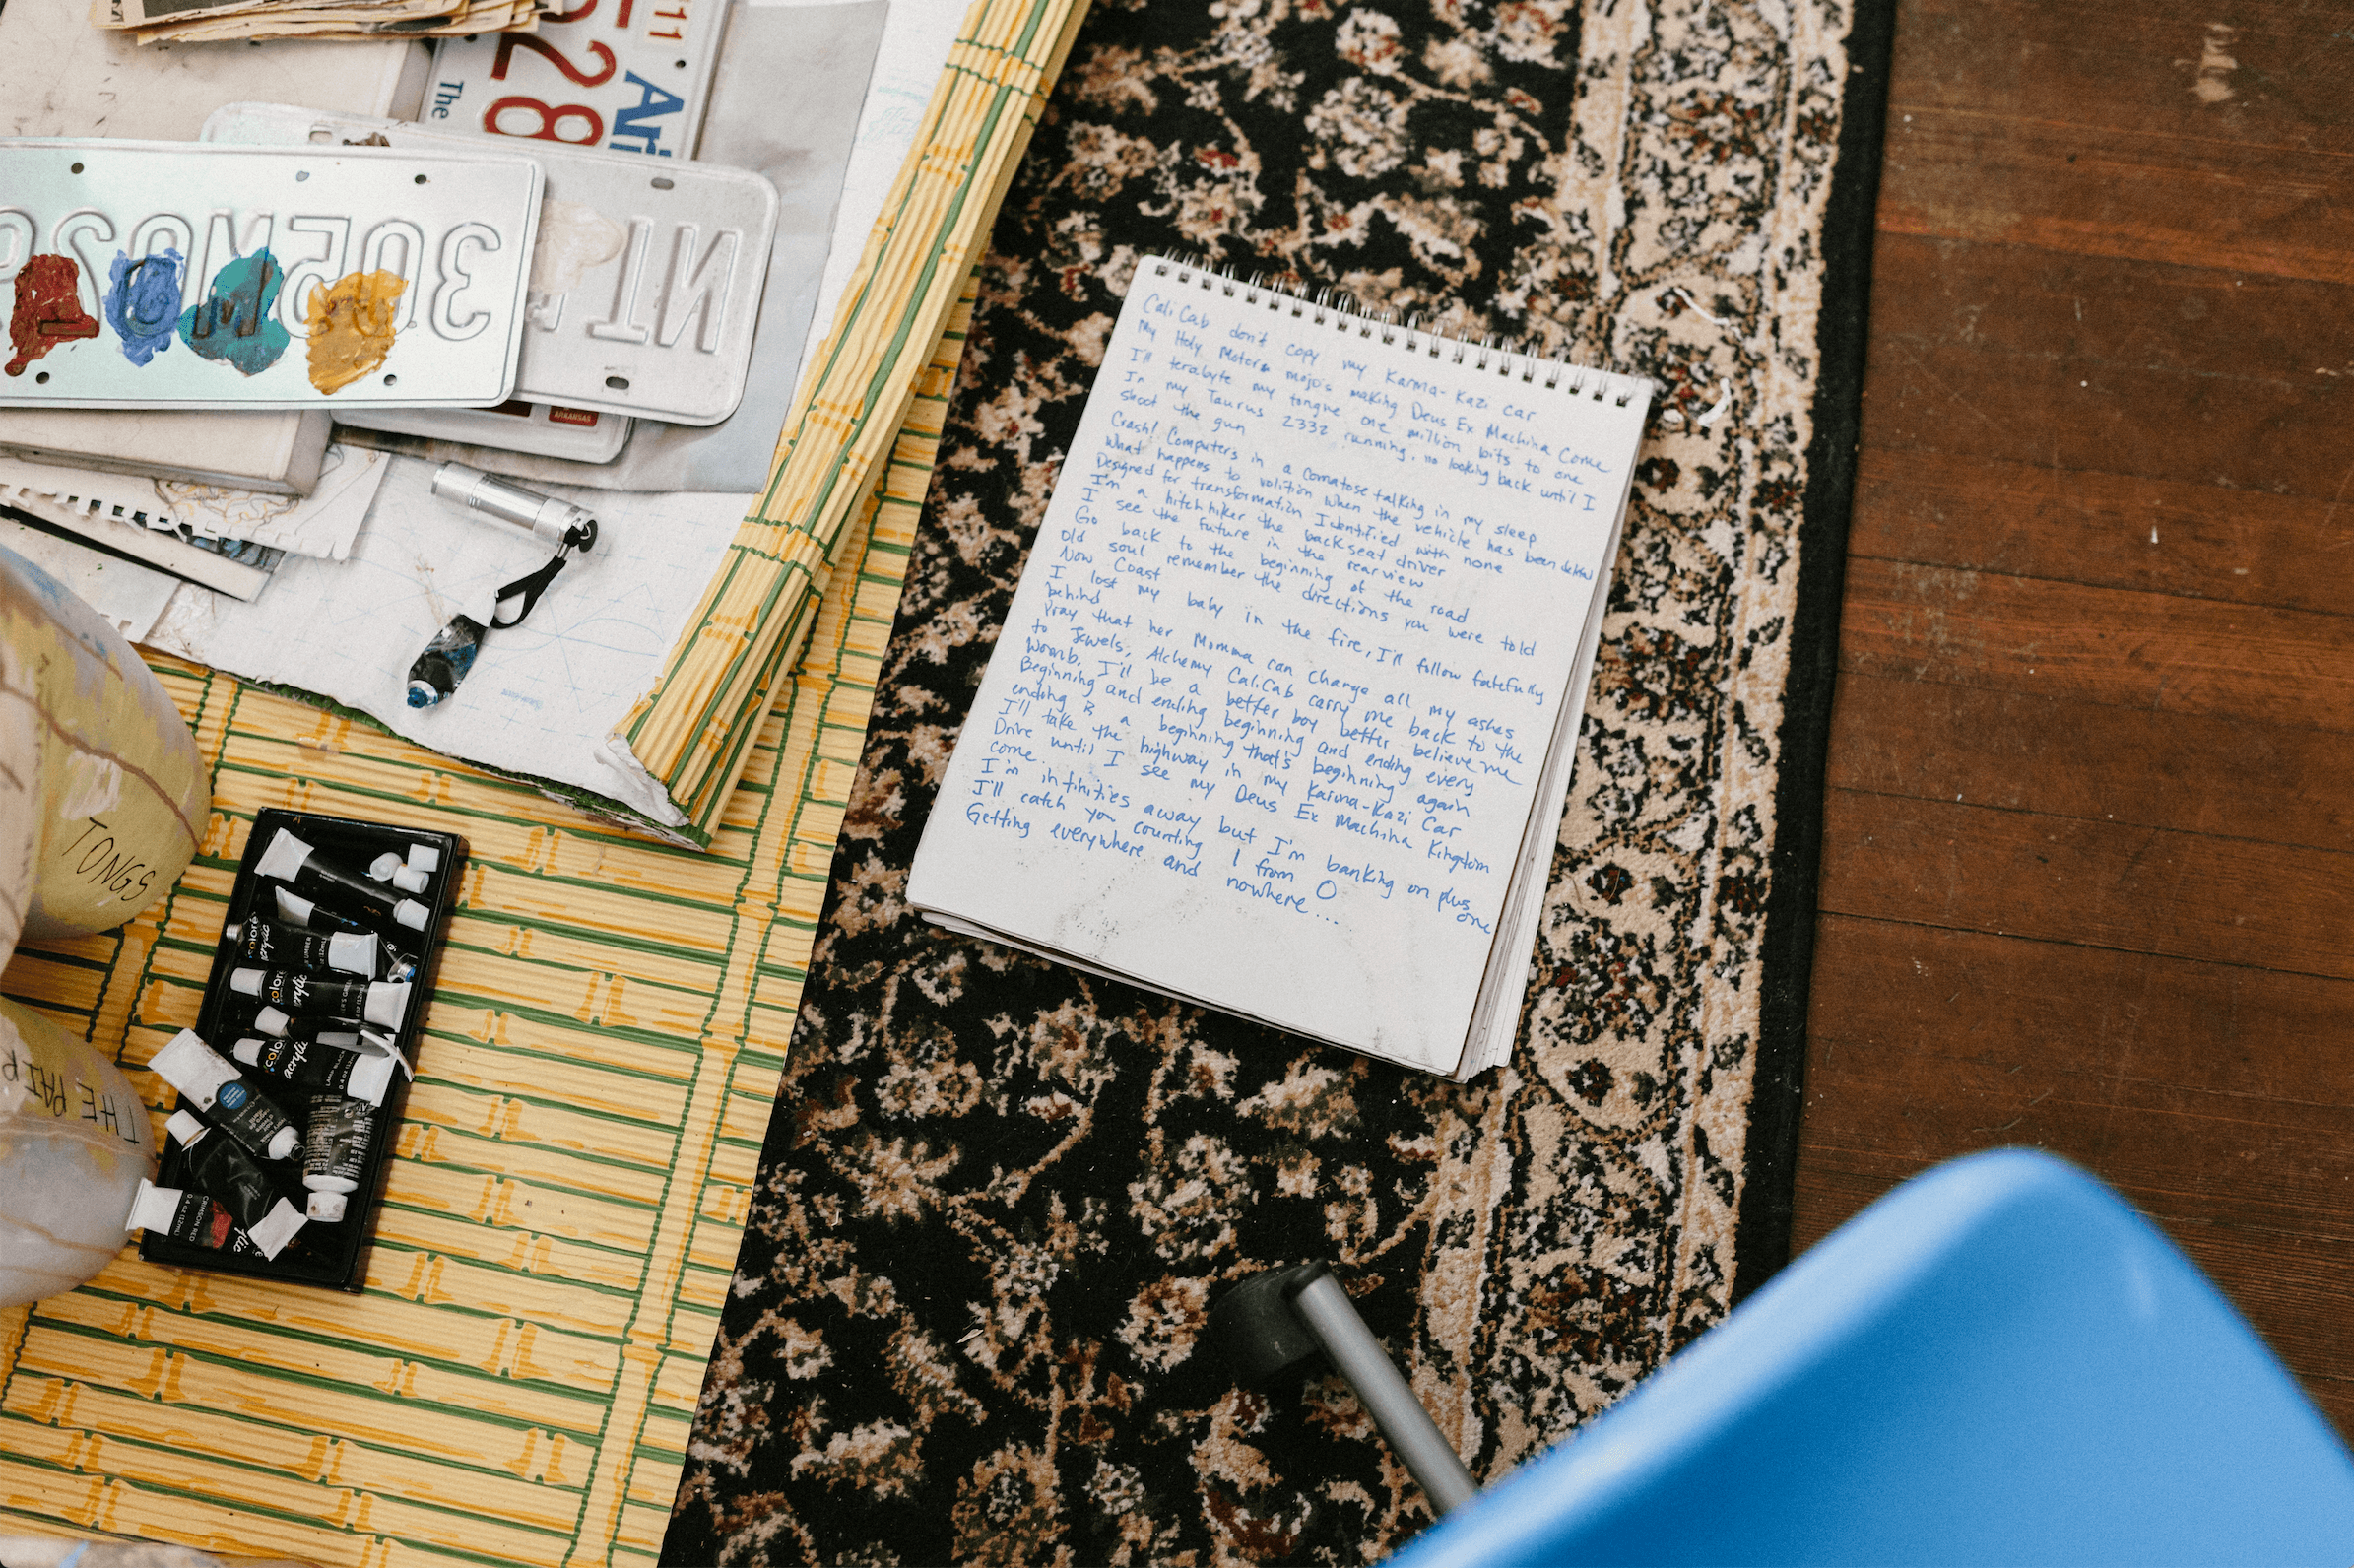 Journalling as a way of restoring peace and decreasing anxiety